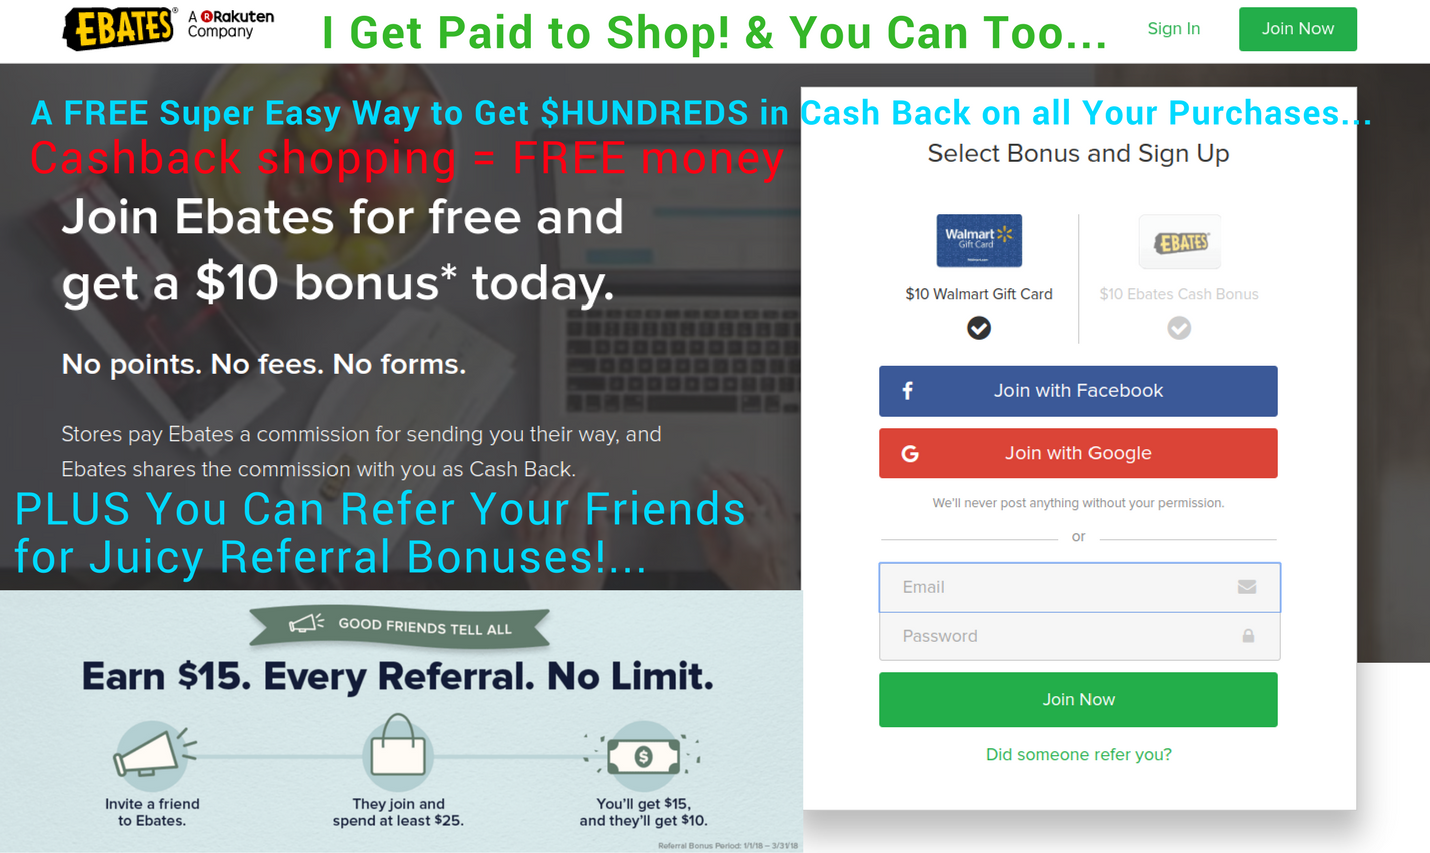 Super easy way to earn cash back on all your purchases with world's number 1 cashback shopping site